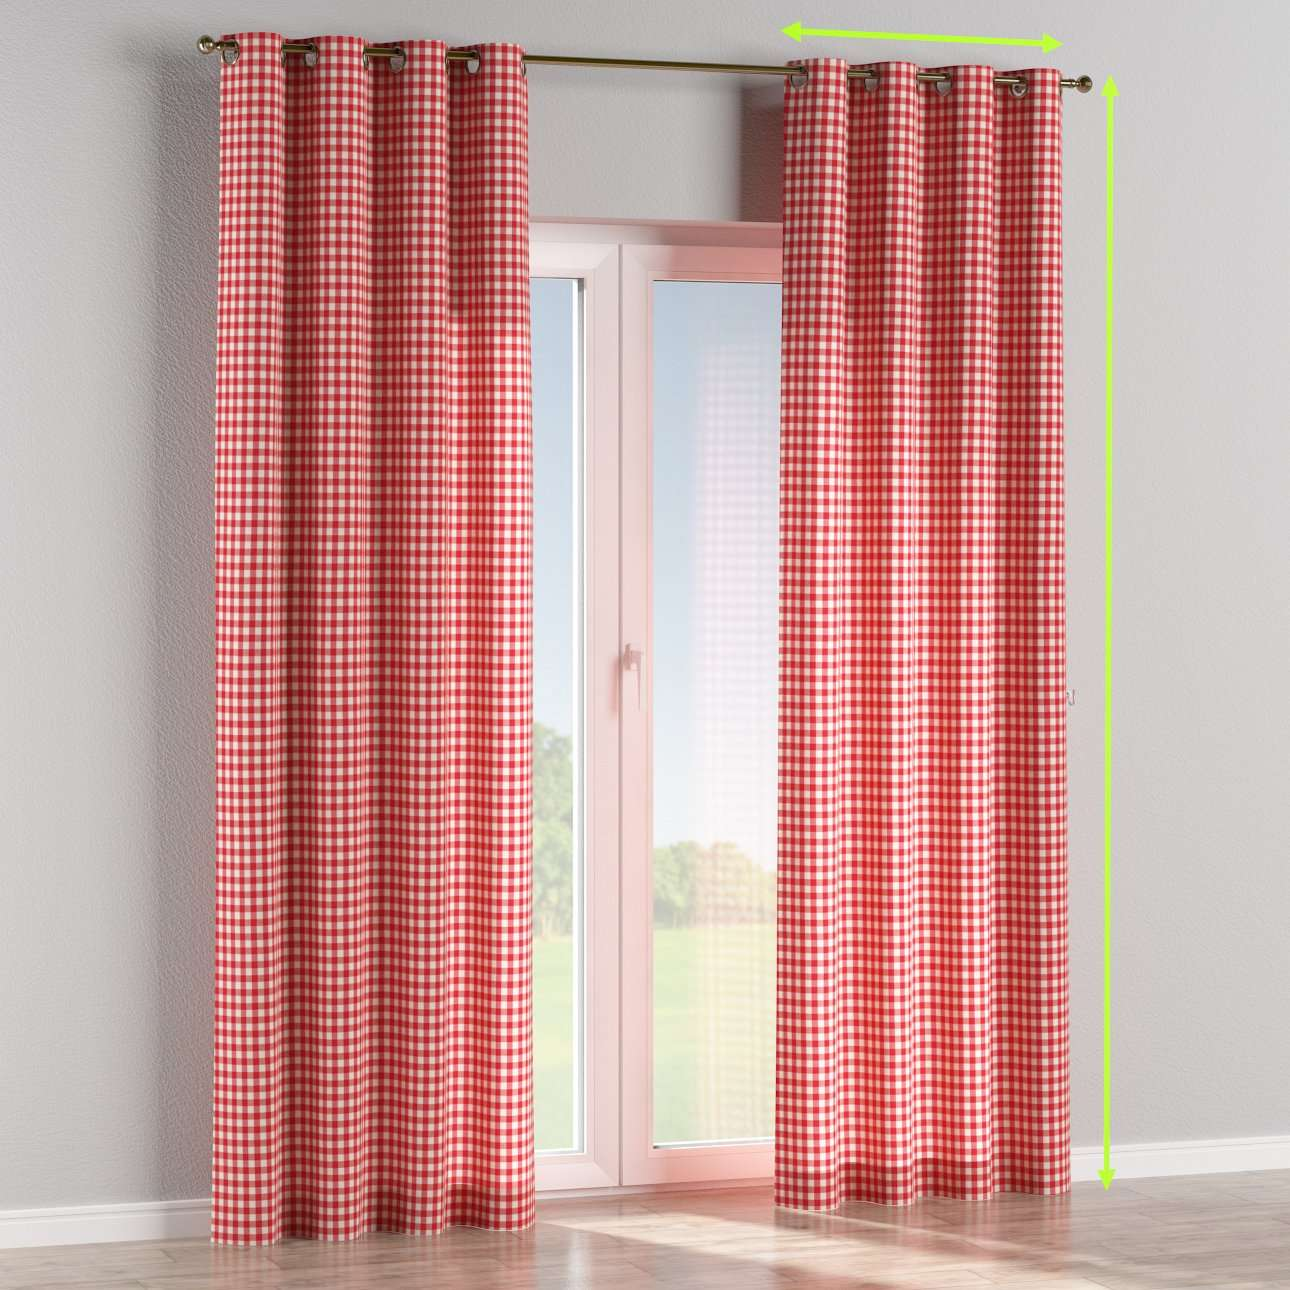 Eyelet curtains in collection Quadro, fabric: 136-16